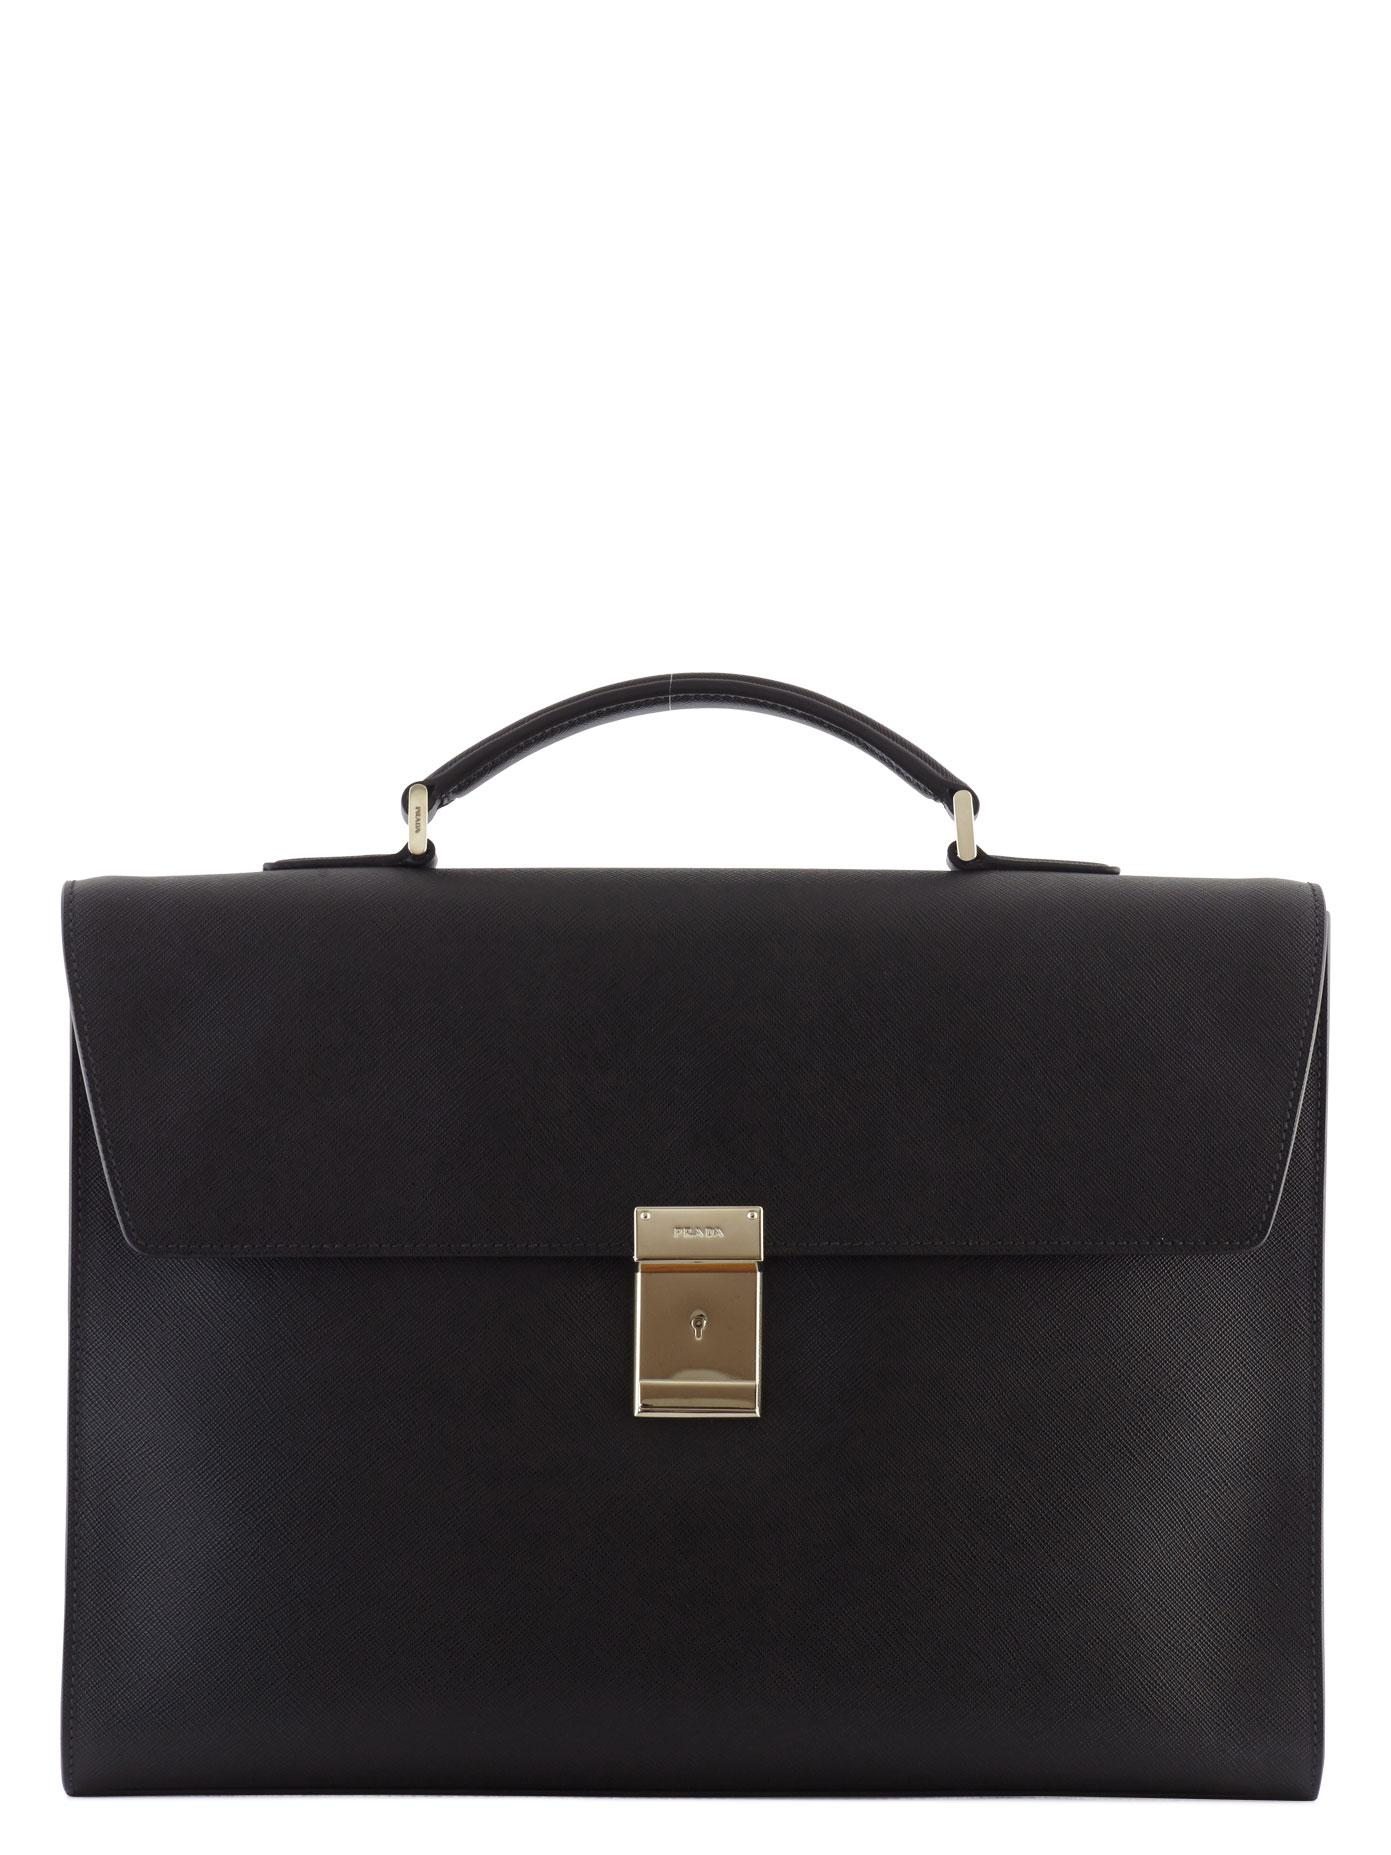 Prada Saffiano Leather Briefcase In Black For Men Lyst